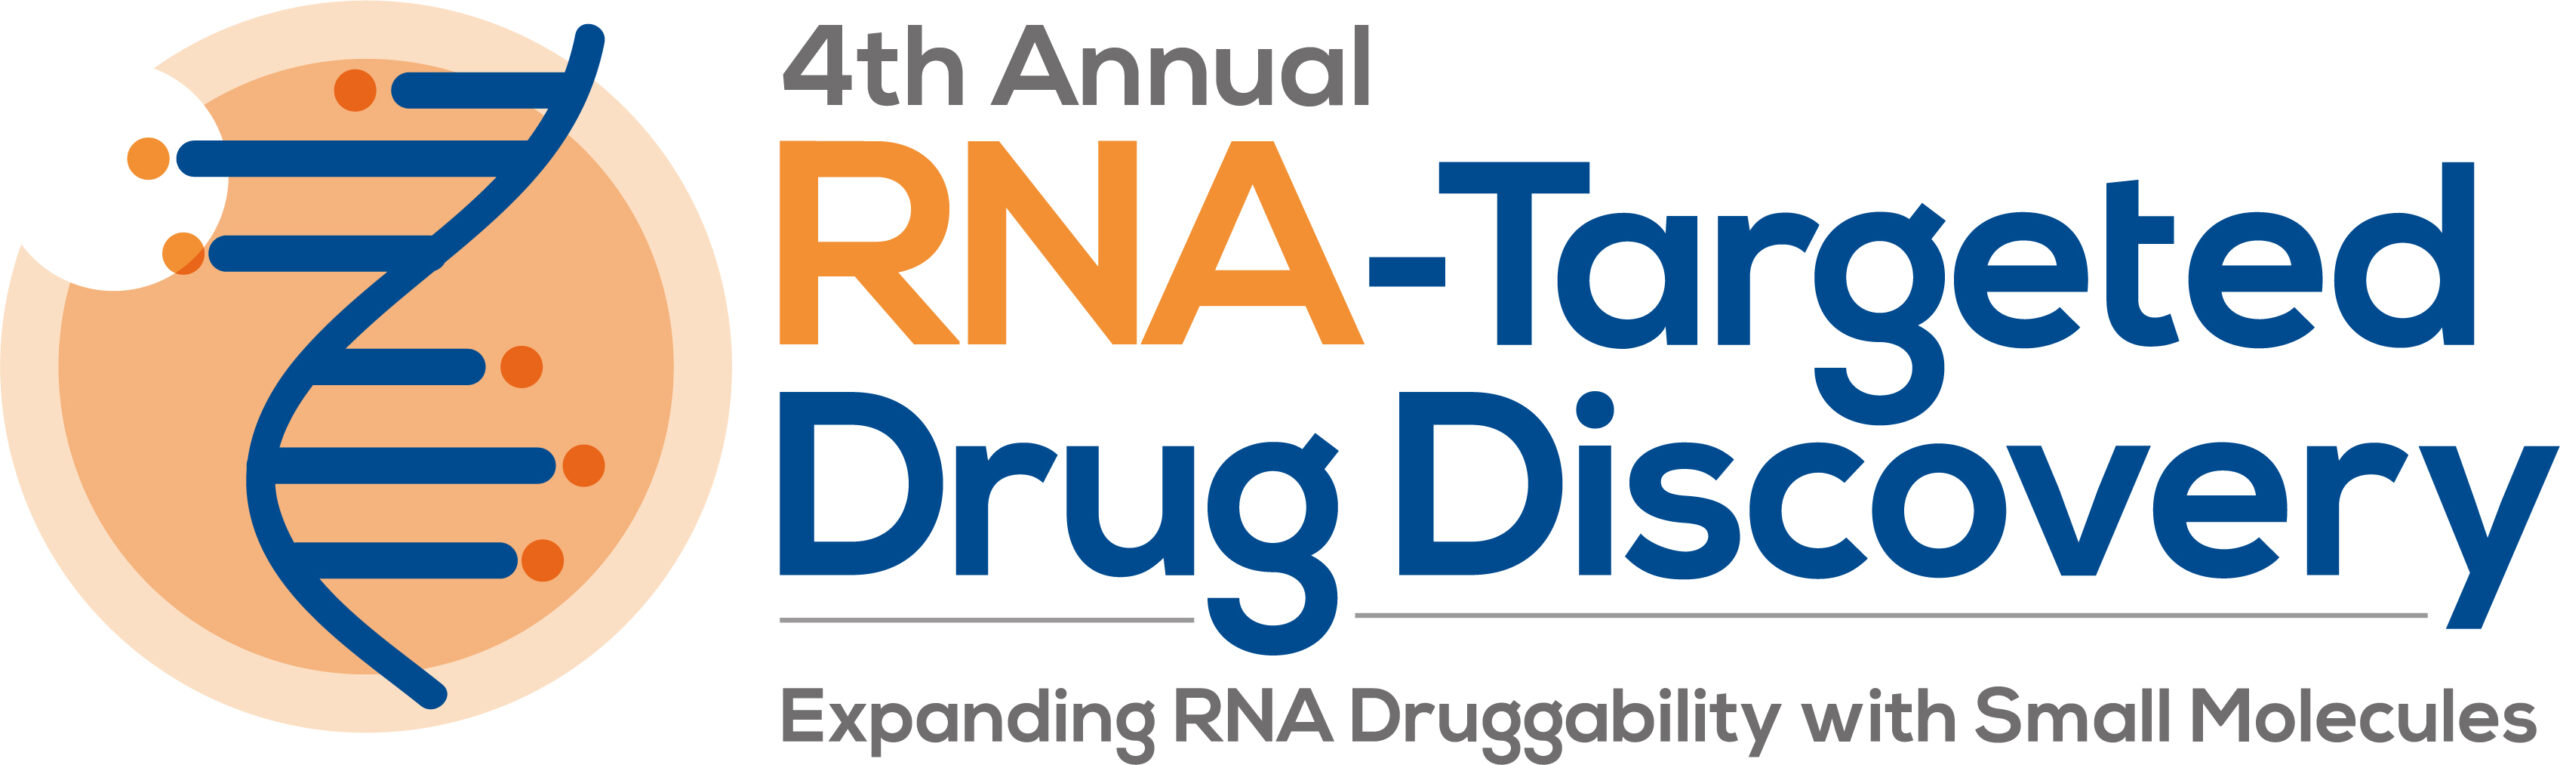 HW210716 4th RNA Targeted Drug Discovery logo